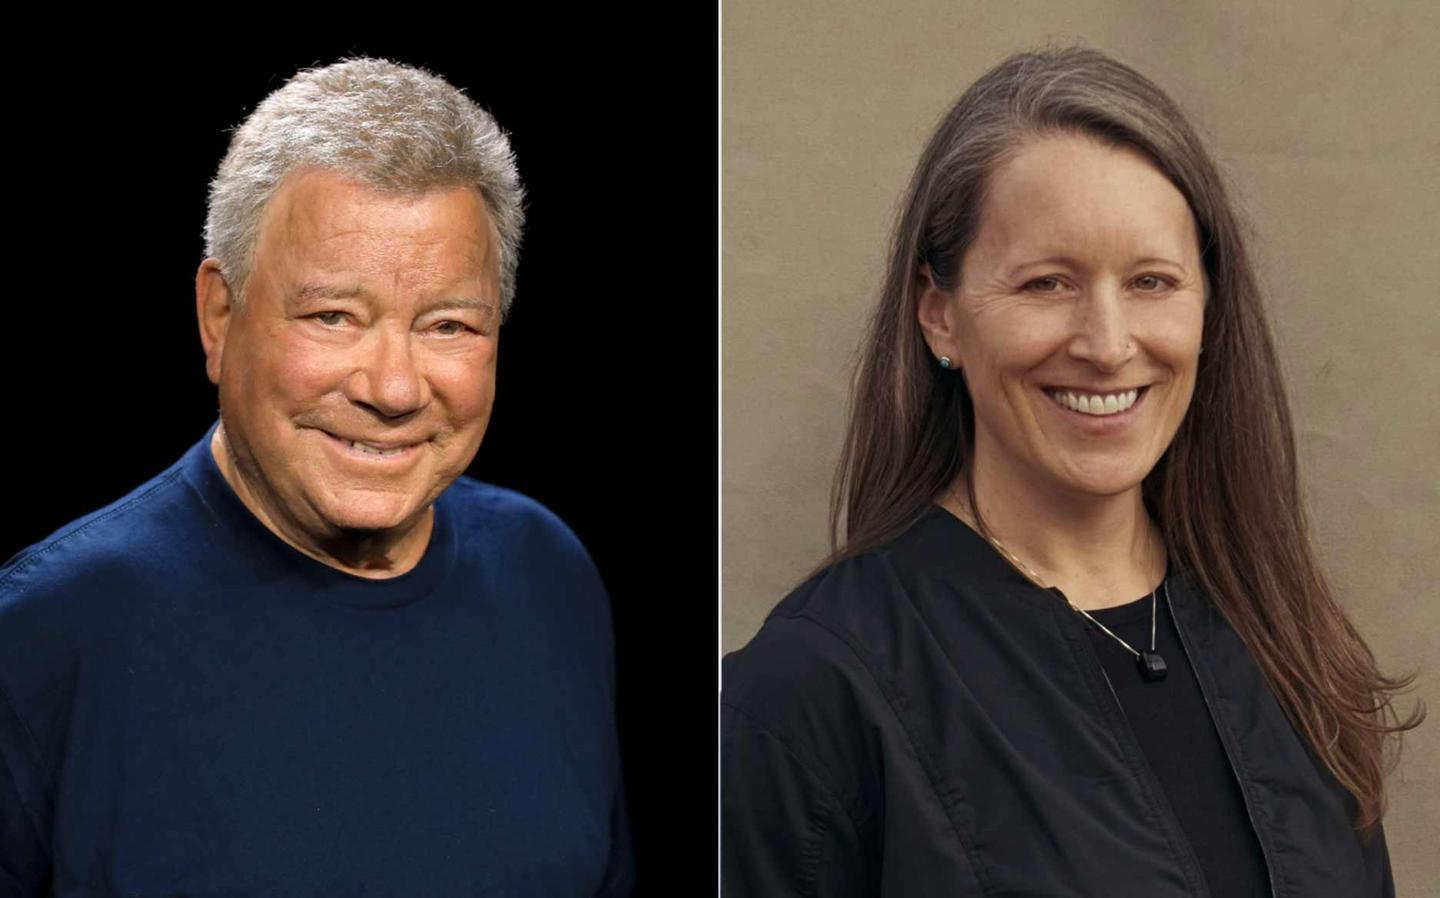 William Shatner and Audrey Powers will be flown into space on Blue Origin's upcoming NS-18 mission